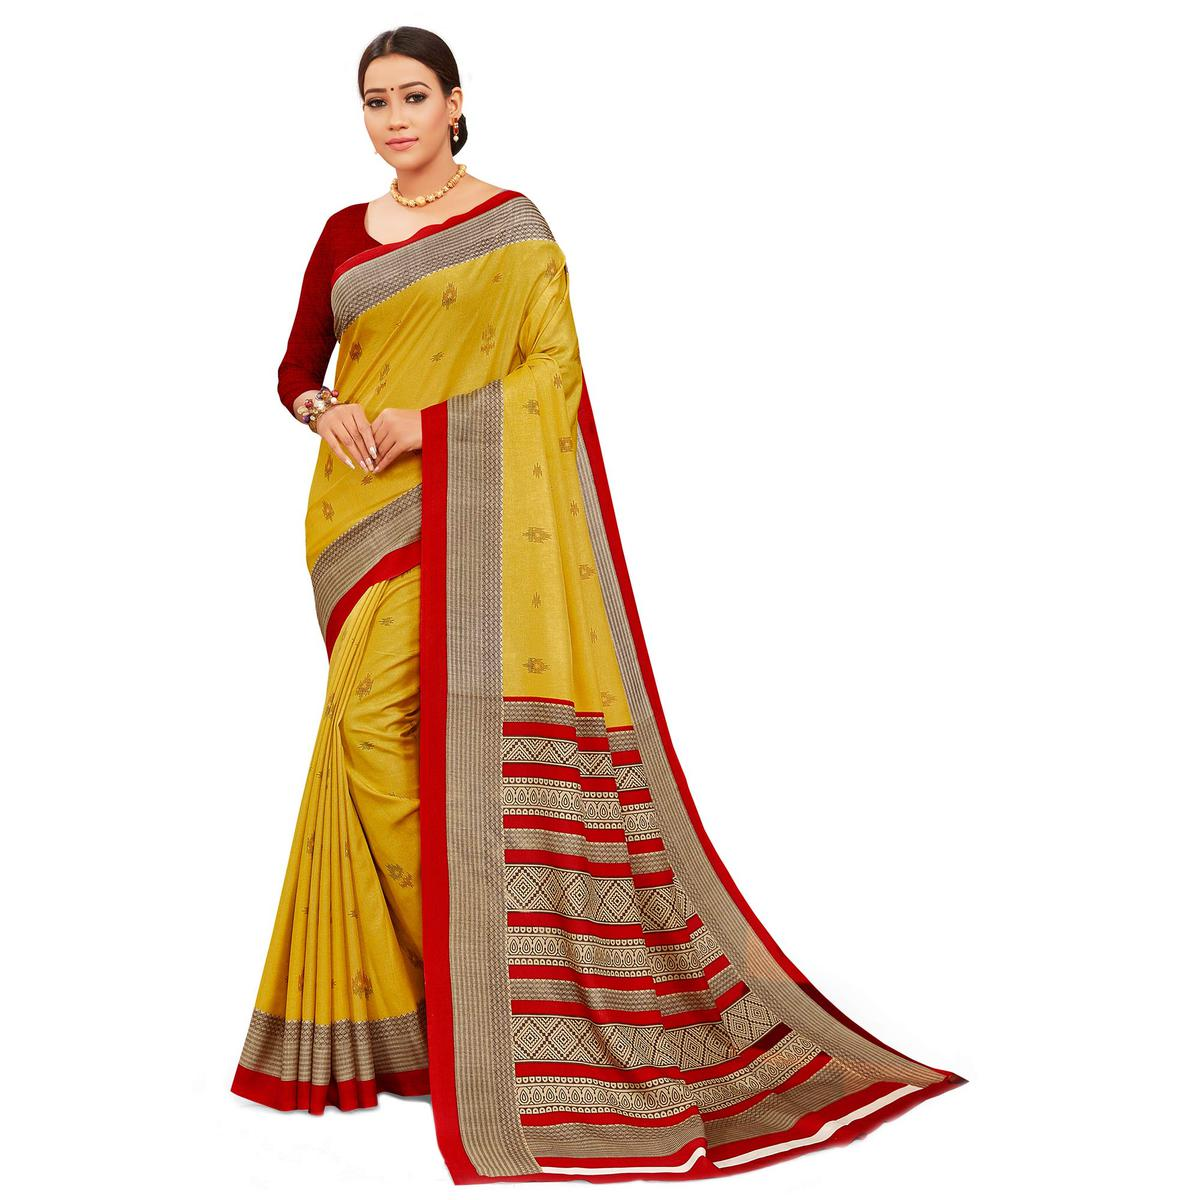 Capricious Yellow Colored Casual Wear Printed Manipuri Cotton Saree